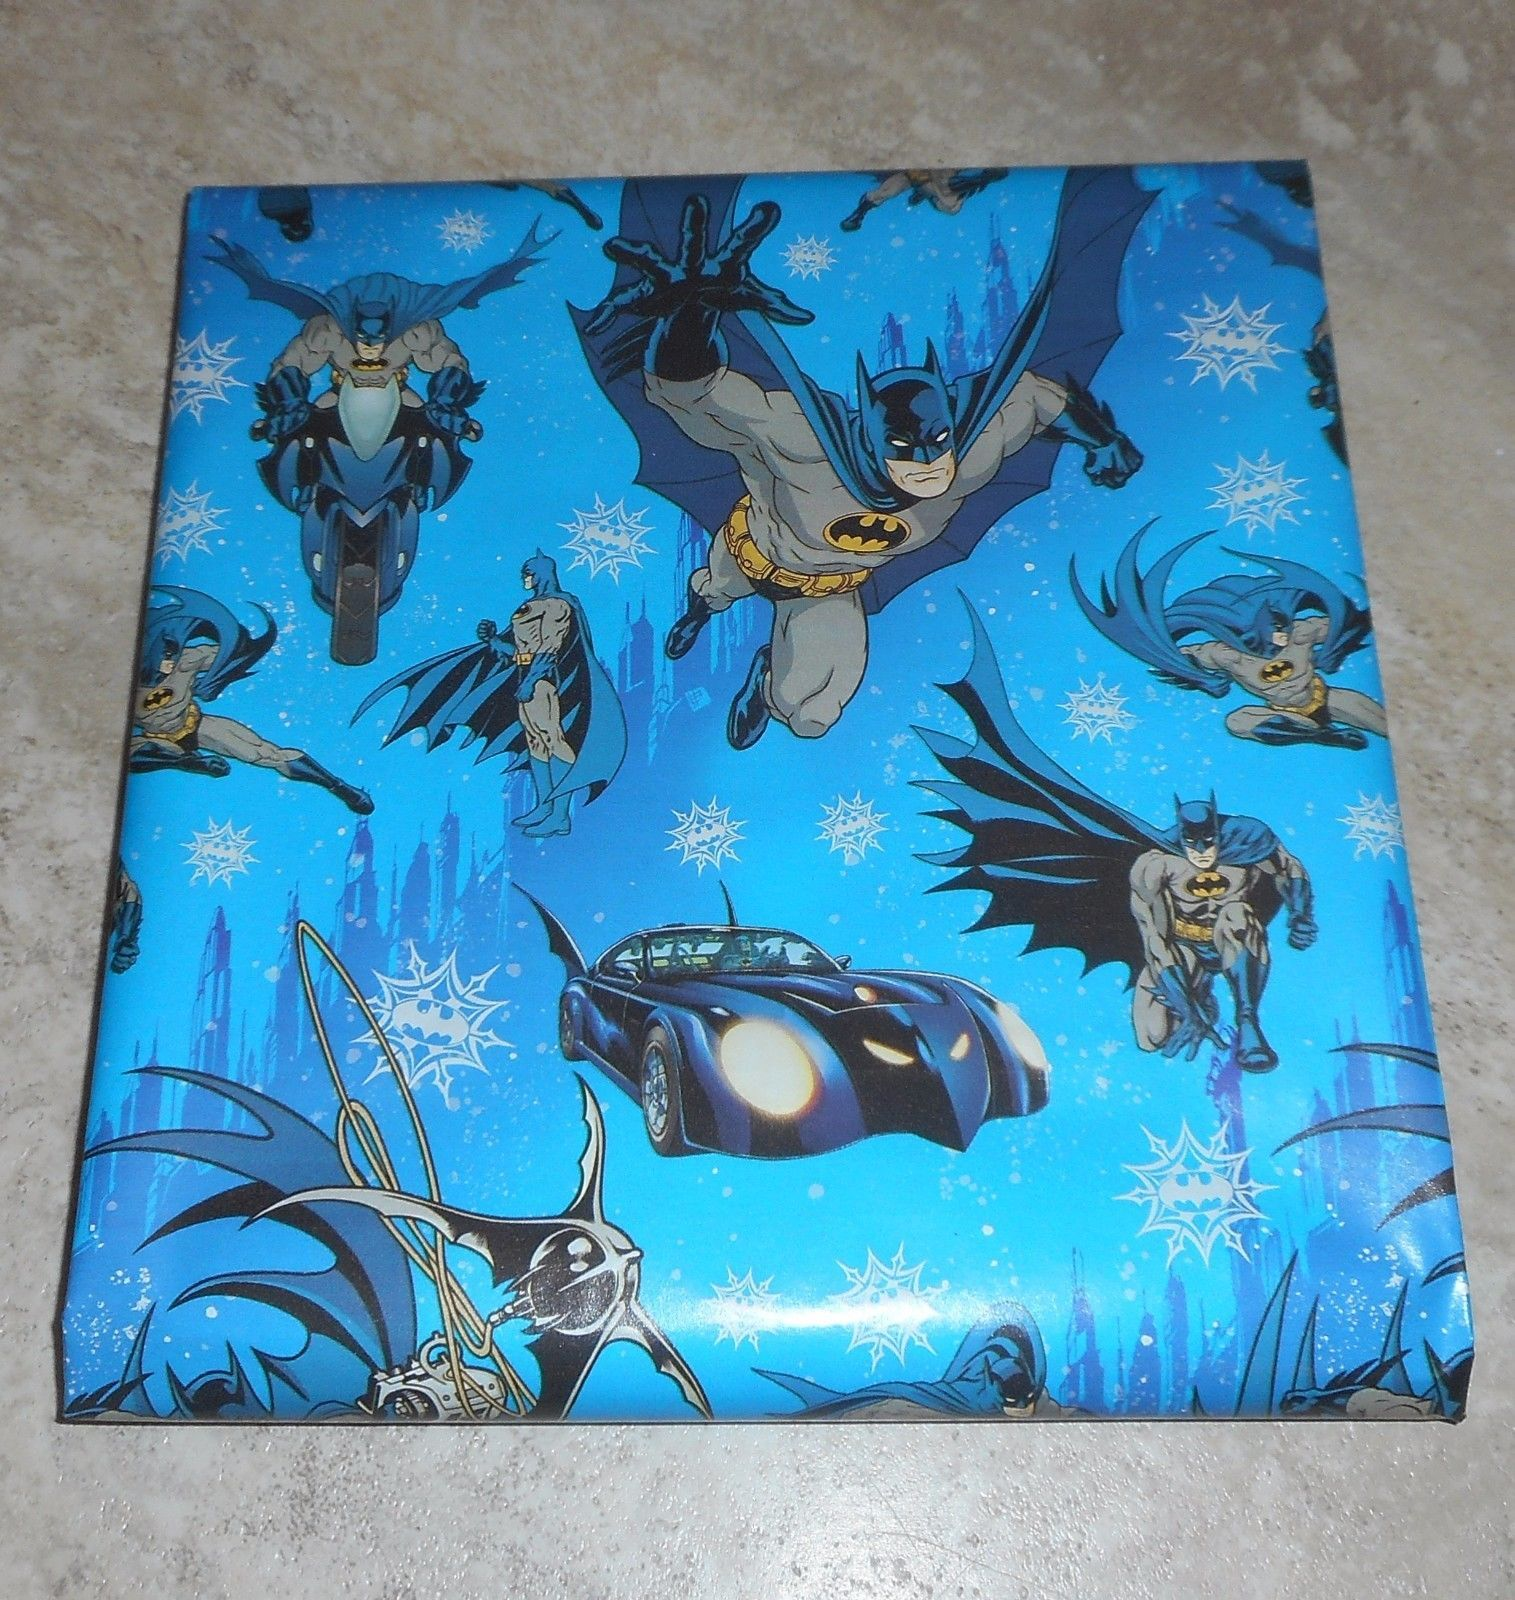 Dc comics batman american greetings and 26 similar items s l1600 s l1600 dc comics batman american greetings christmas wrapping paper m4hsunfo